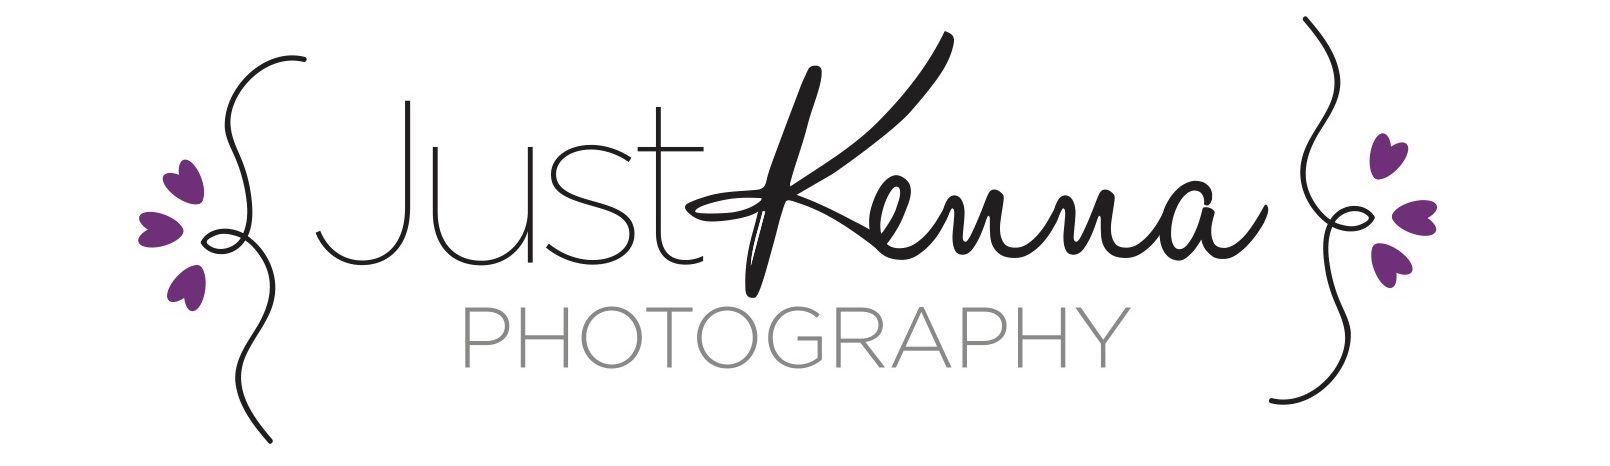 JUSTKENNA PHOTOGRAPHY